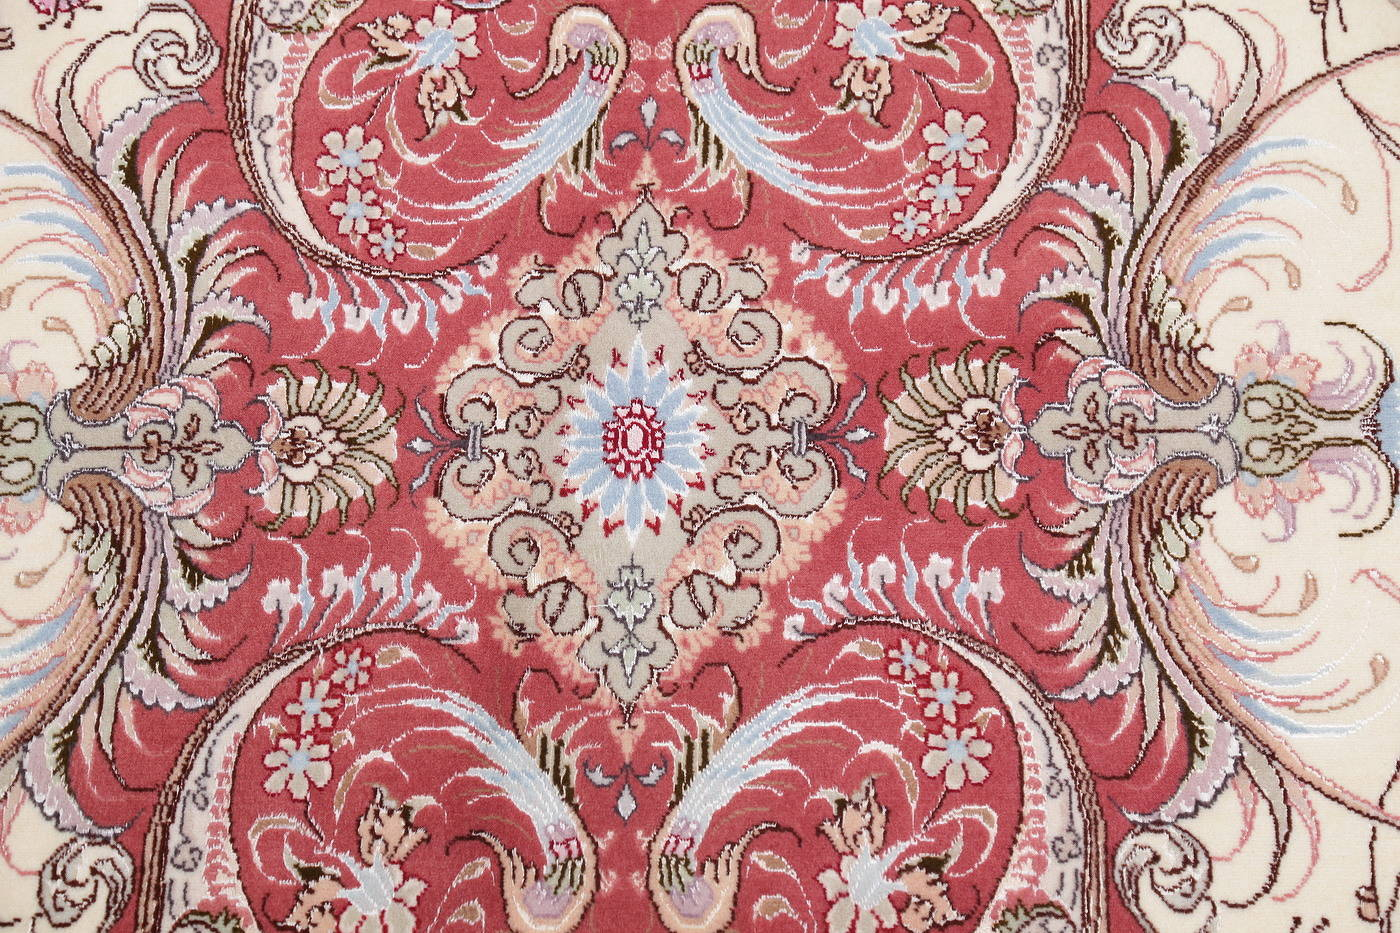 Ivory Floral Tabriz Persian Oval Area Rug 7x10 image 8